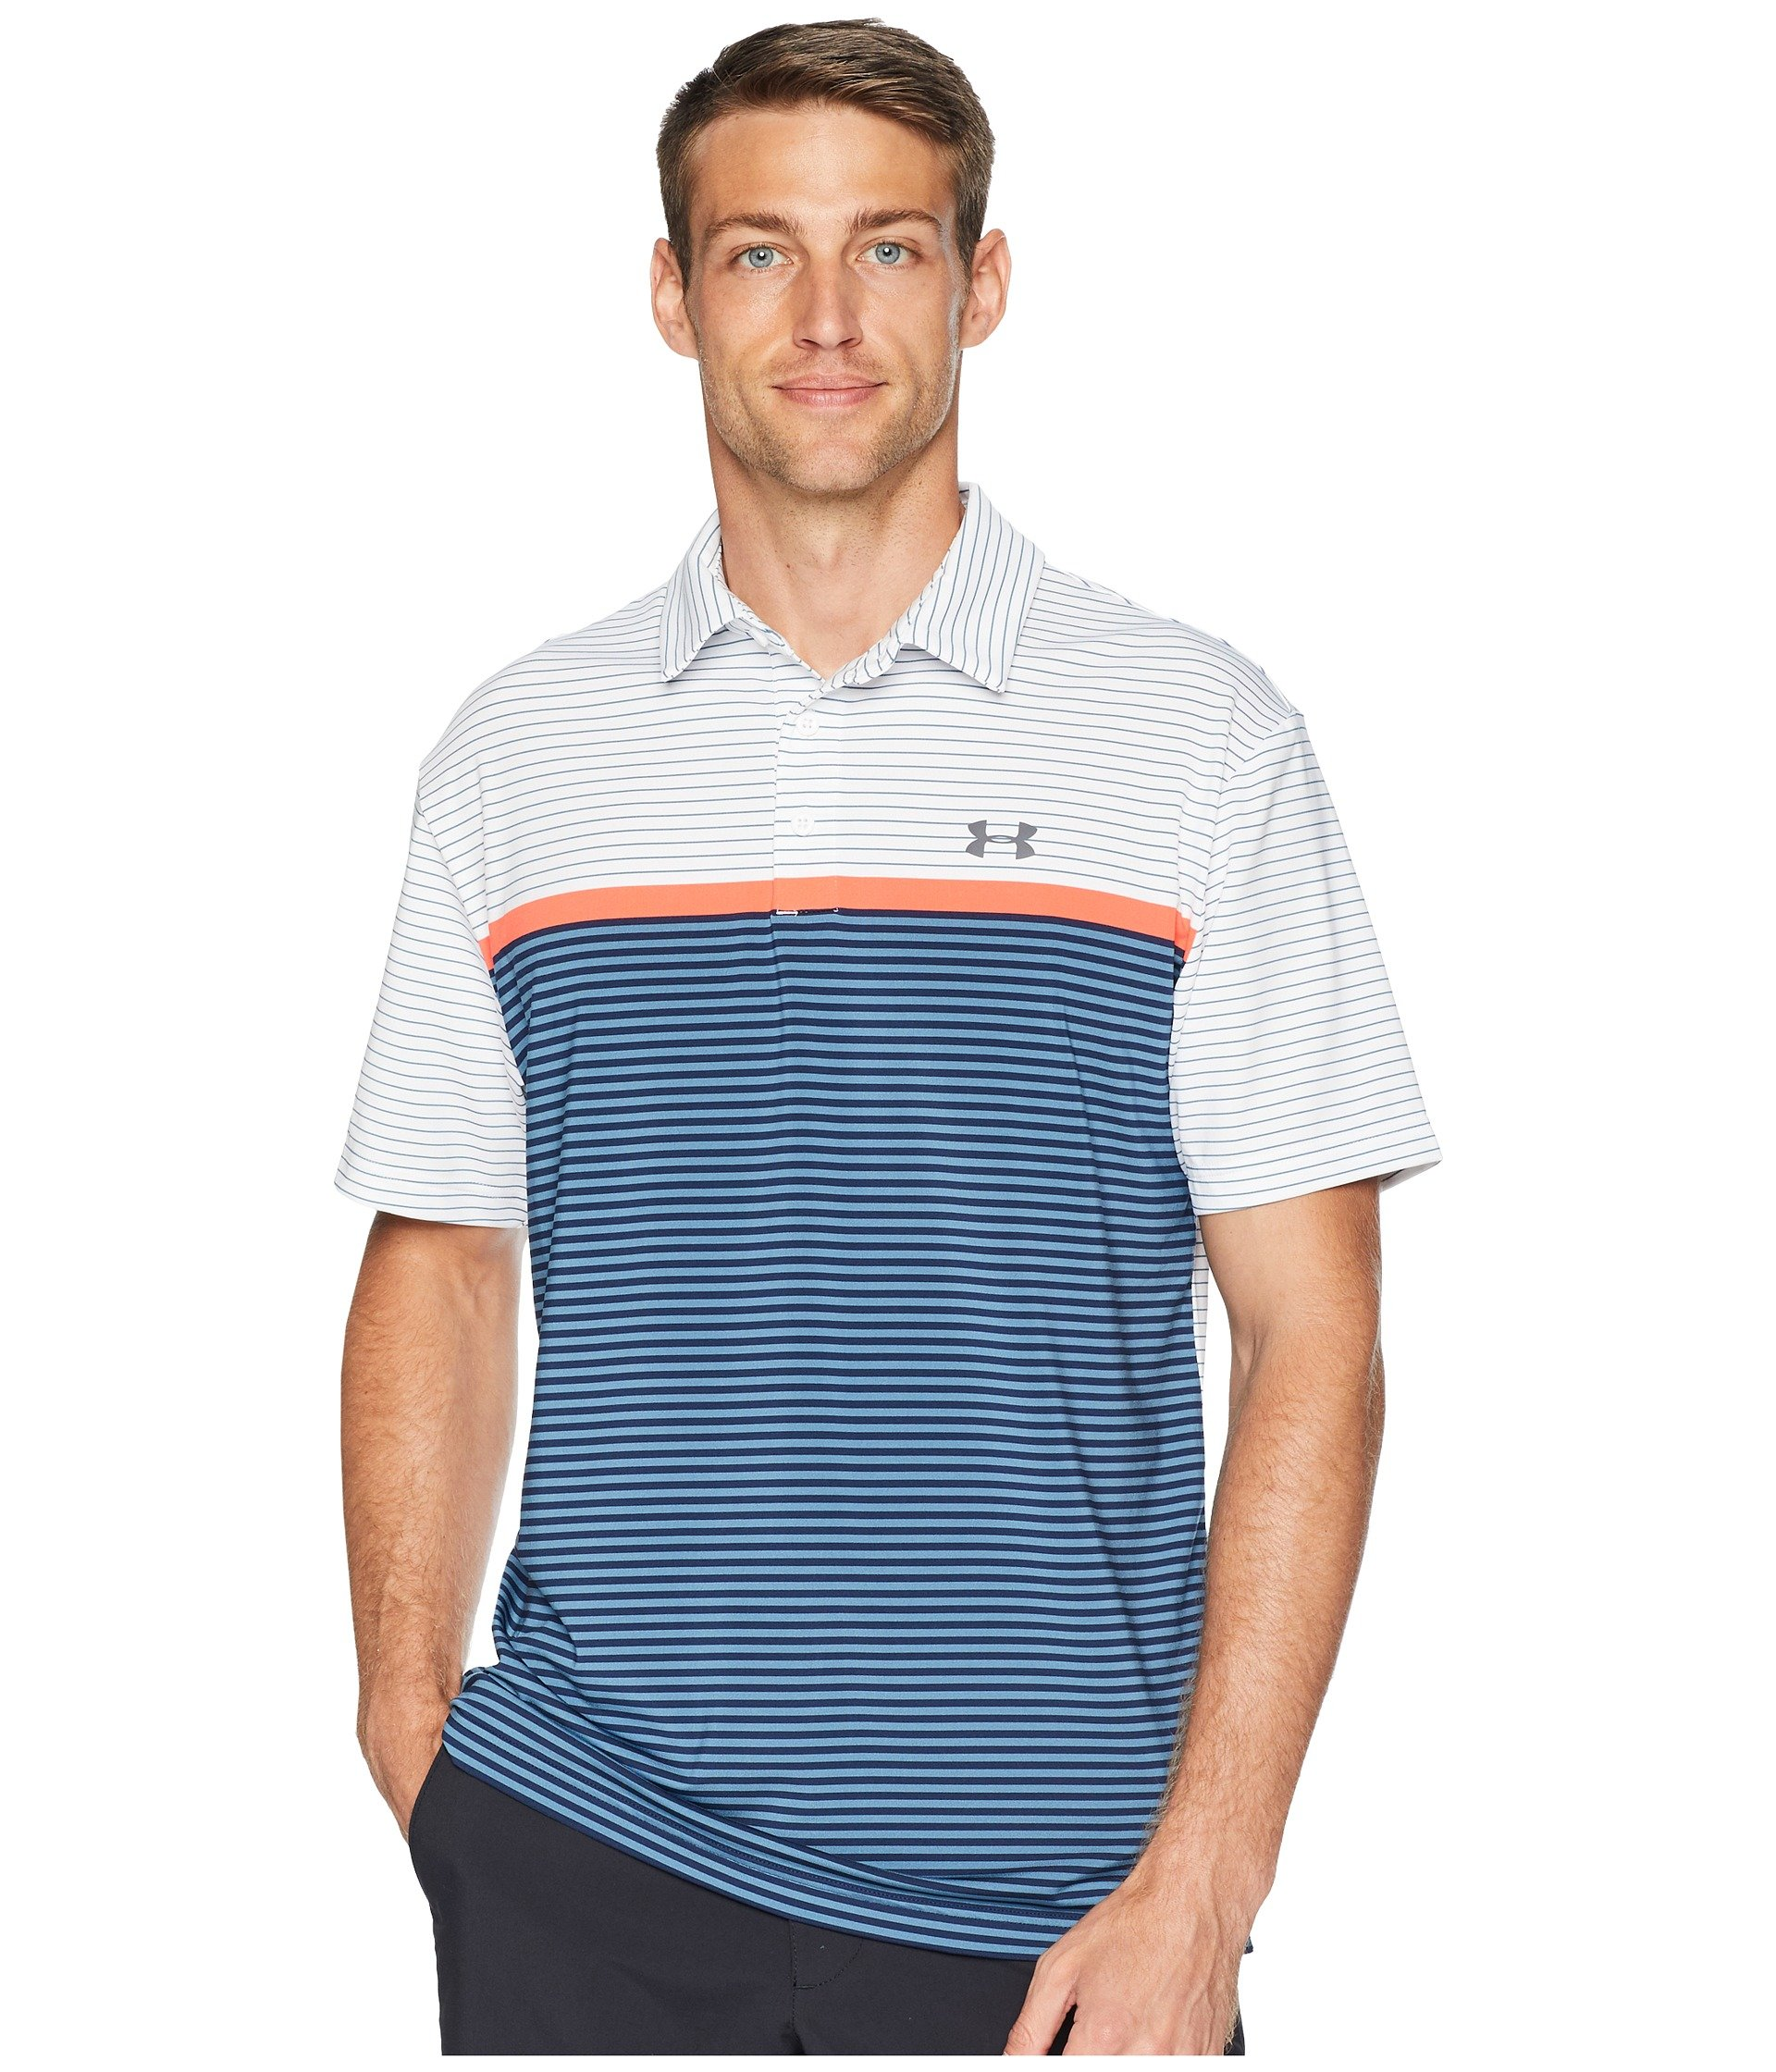 Under Armour Men's Playoff Polo, White (124)/Rhino Gray, X-Small by Under Armour (Image #1)